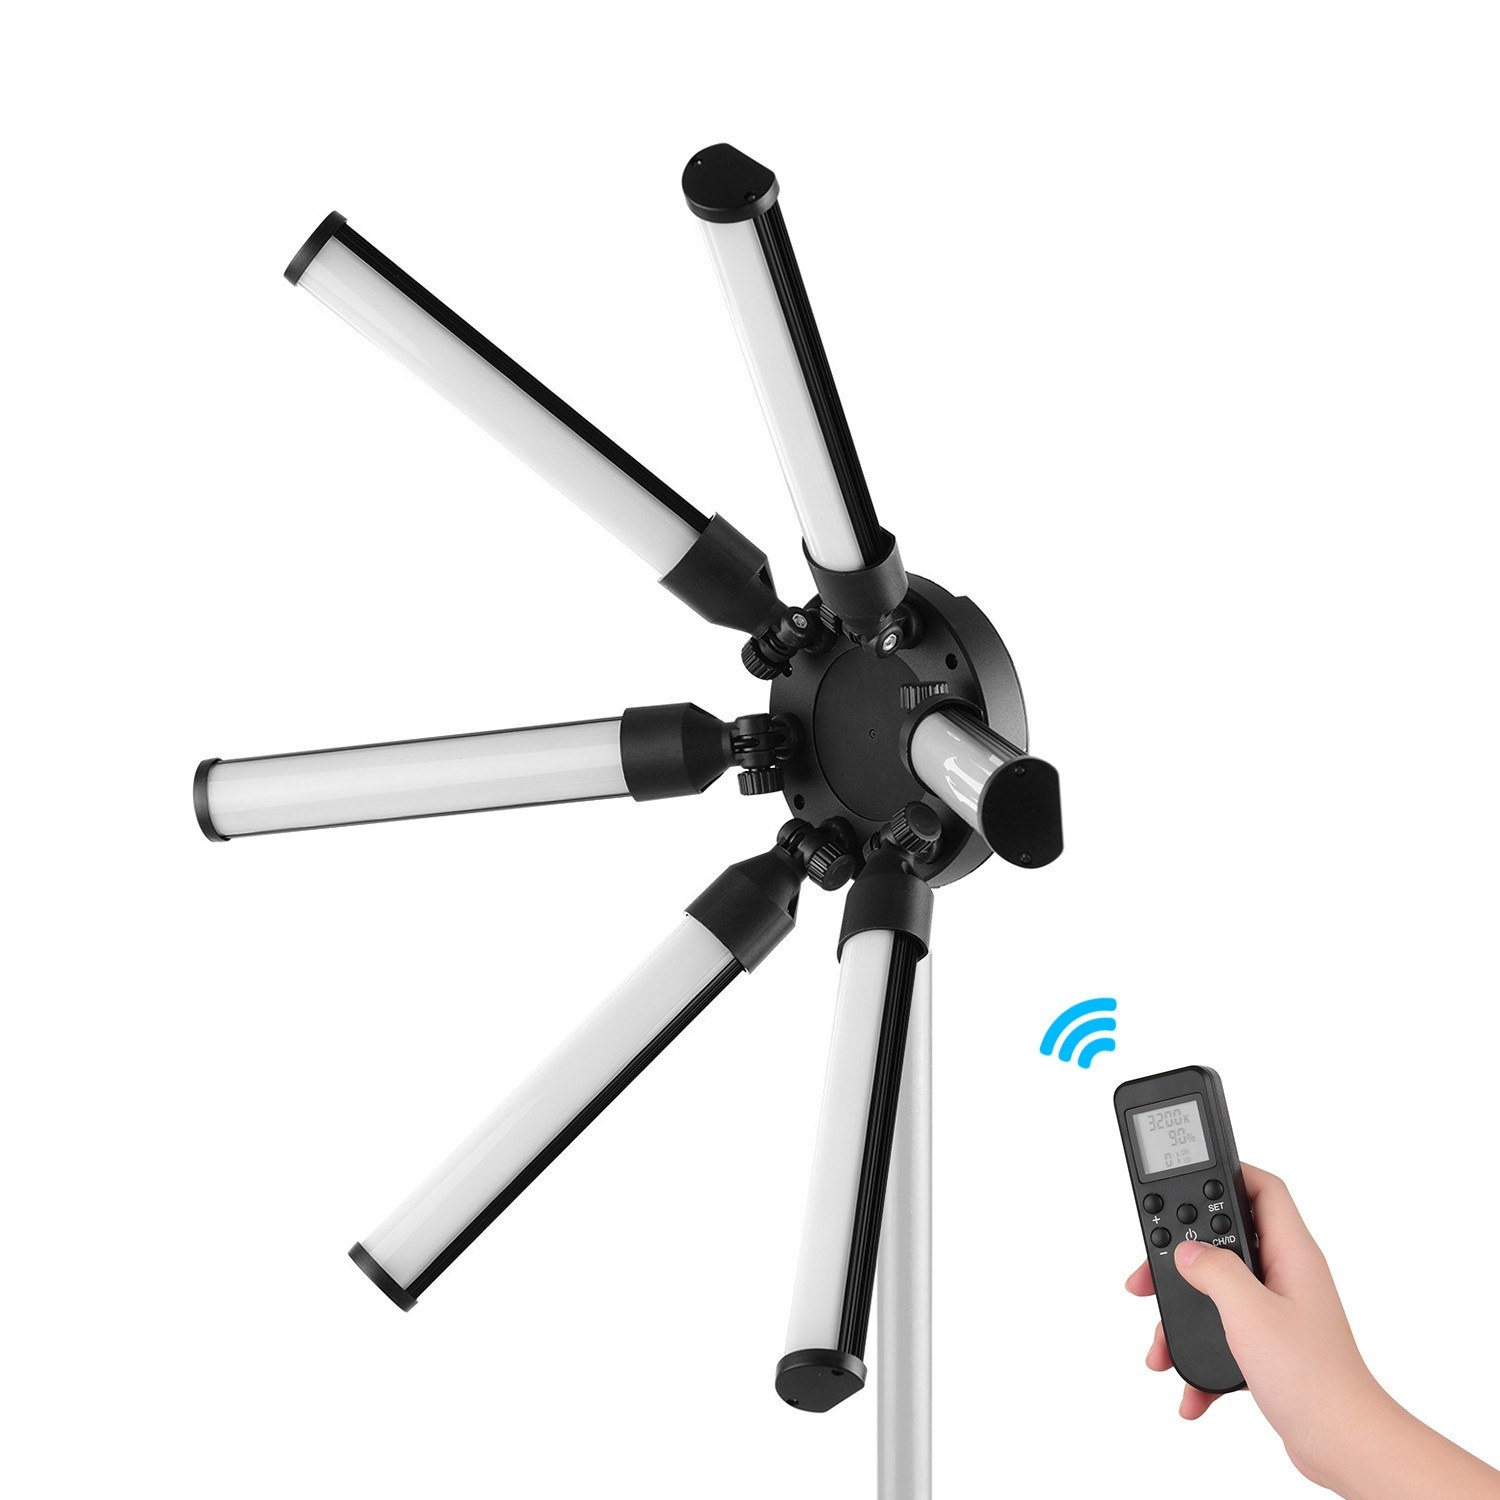 TL-900S Digital Photography Fill Light Star-Shaped Circle Lights 6 PCS LED Tubes 60W CRI 97 3200K-5600K Stepless Dimming with 2.4G Remote Control and Mini Ball Head Suit for Video Live Makeup Outdoor Interview Studio Lighting